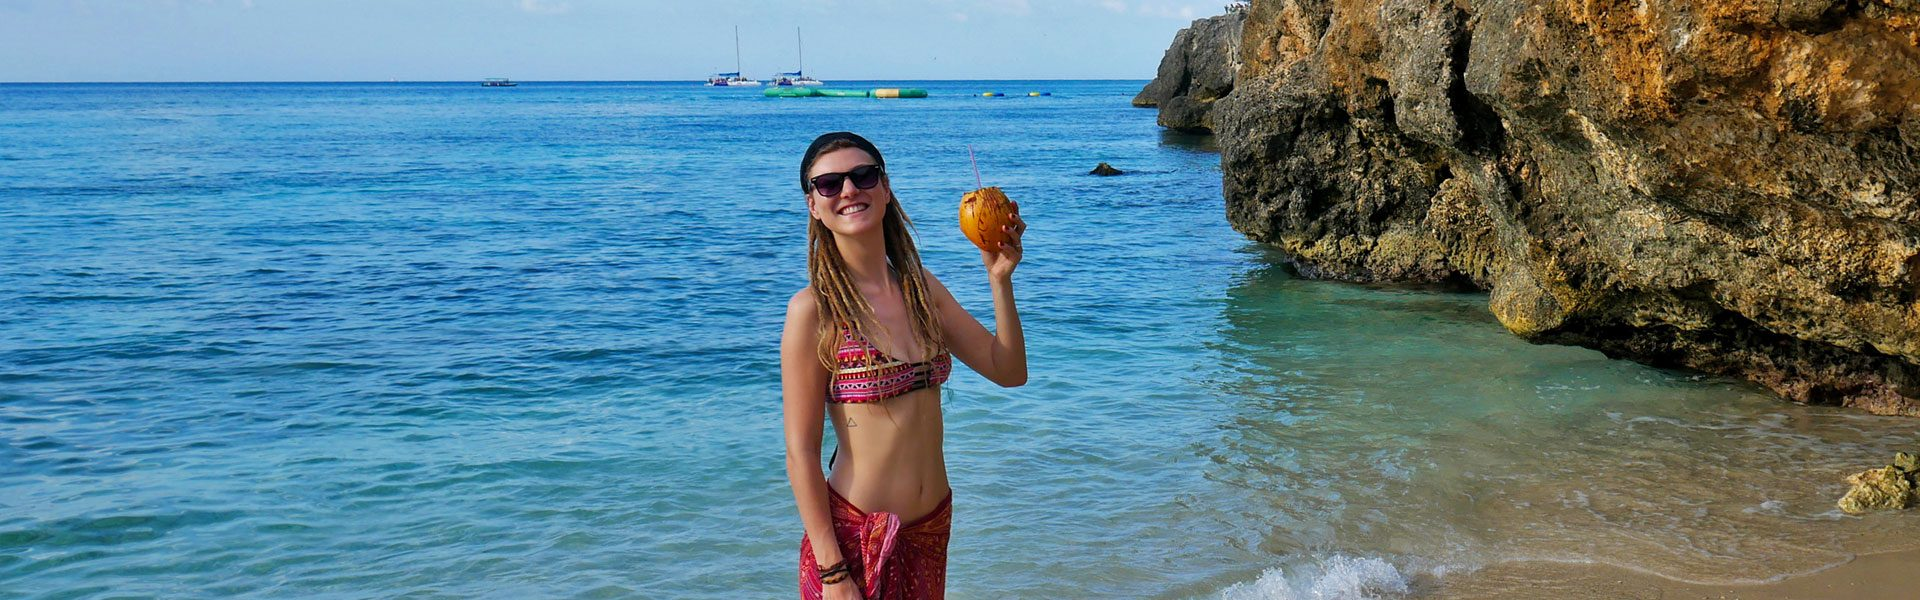 Rasta girl with coconut at beach in Montego Bay, Jamaica